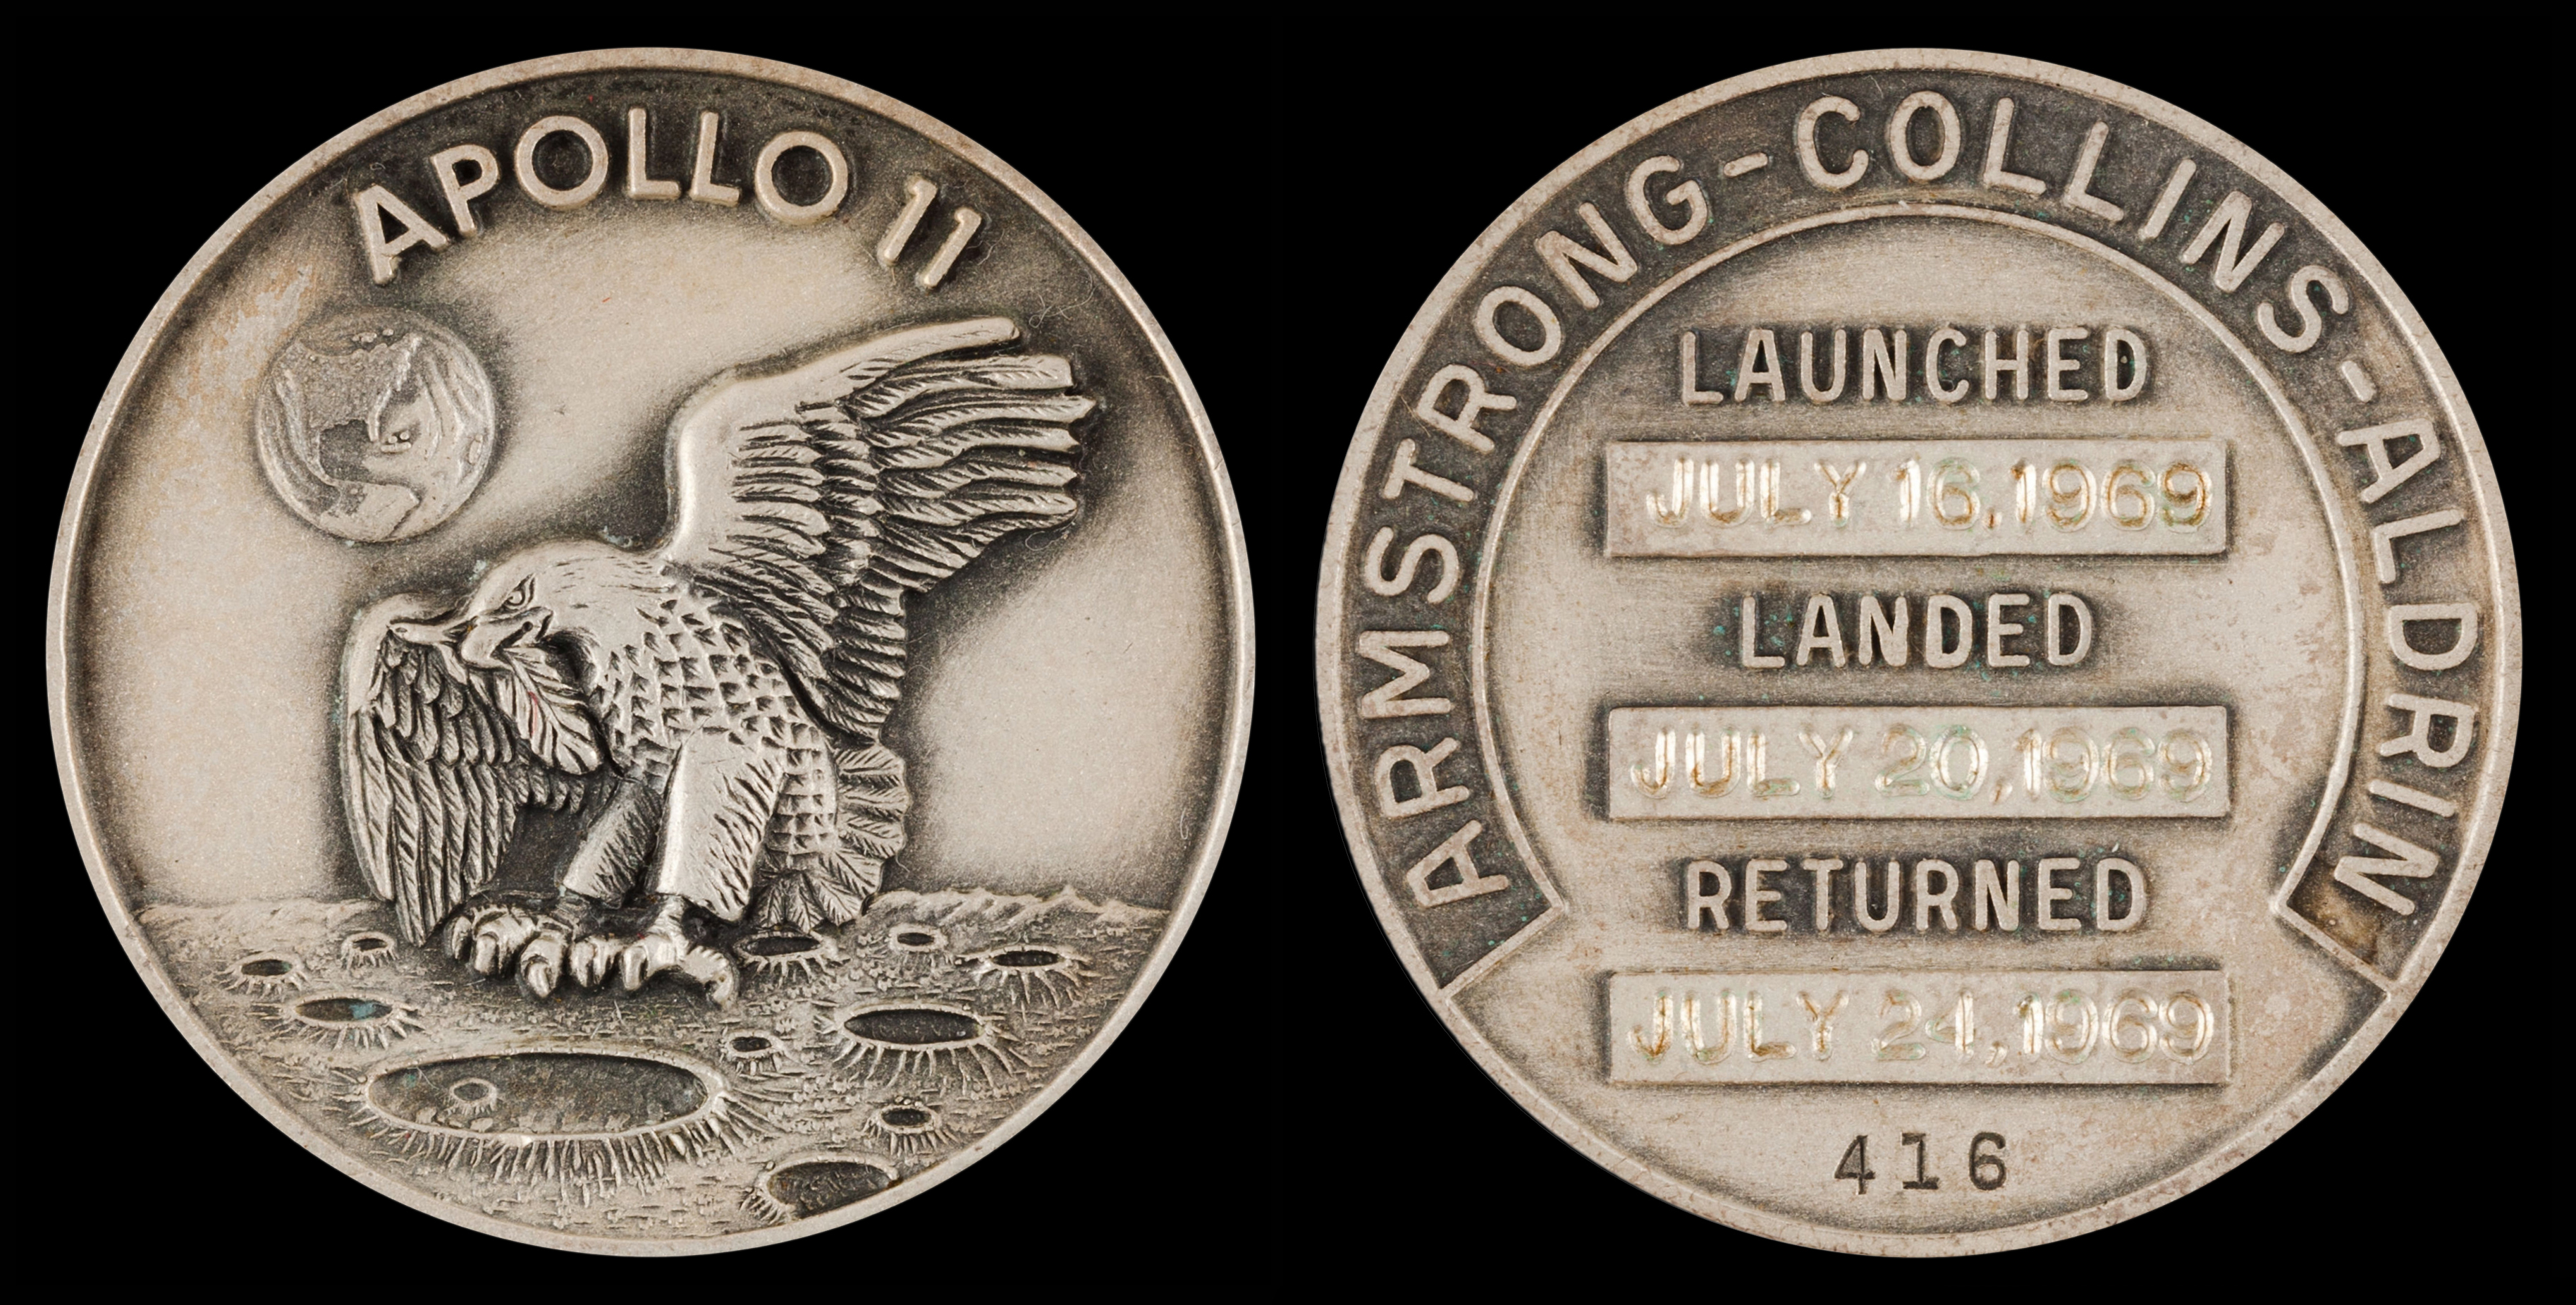 space apollo wiki gemini wikipedia and medallion flown coin silver robbins medallions nasa